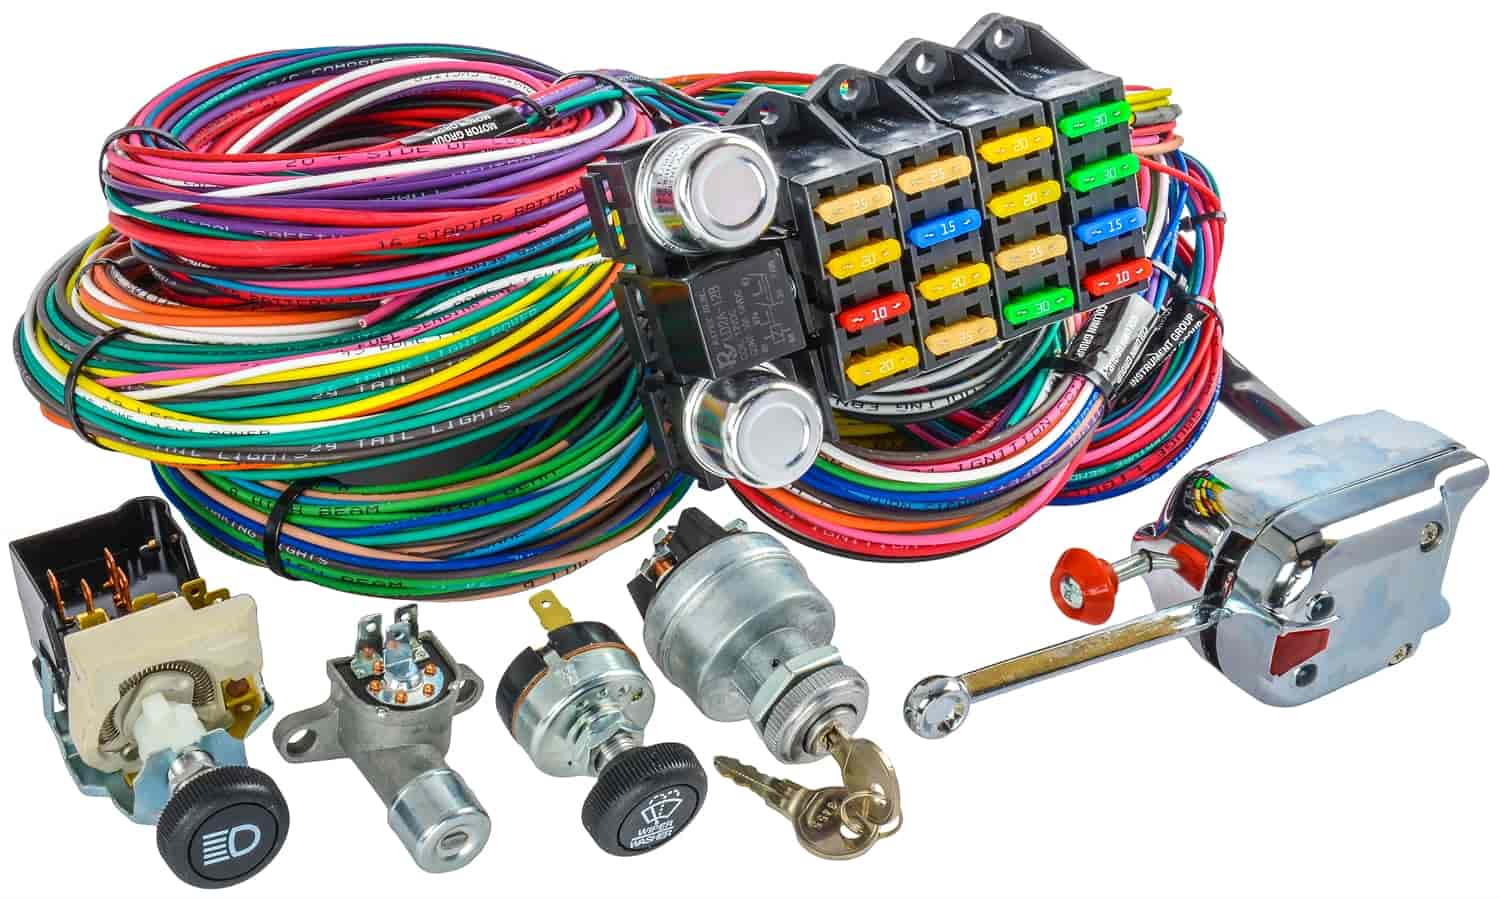 555 10405k jegs performance products 10405k universal wiring harness universal wiring harness kits at crackthecode.co